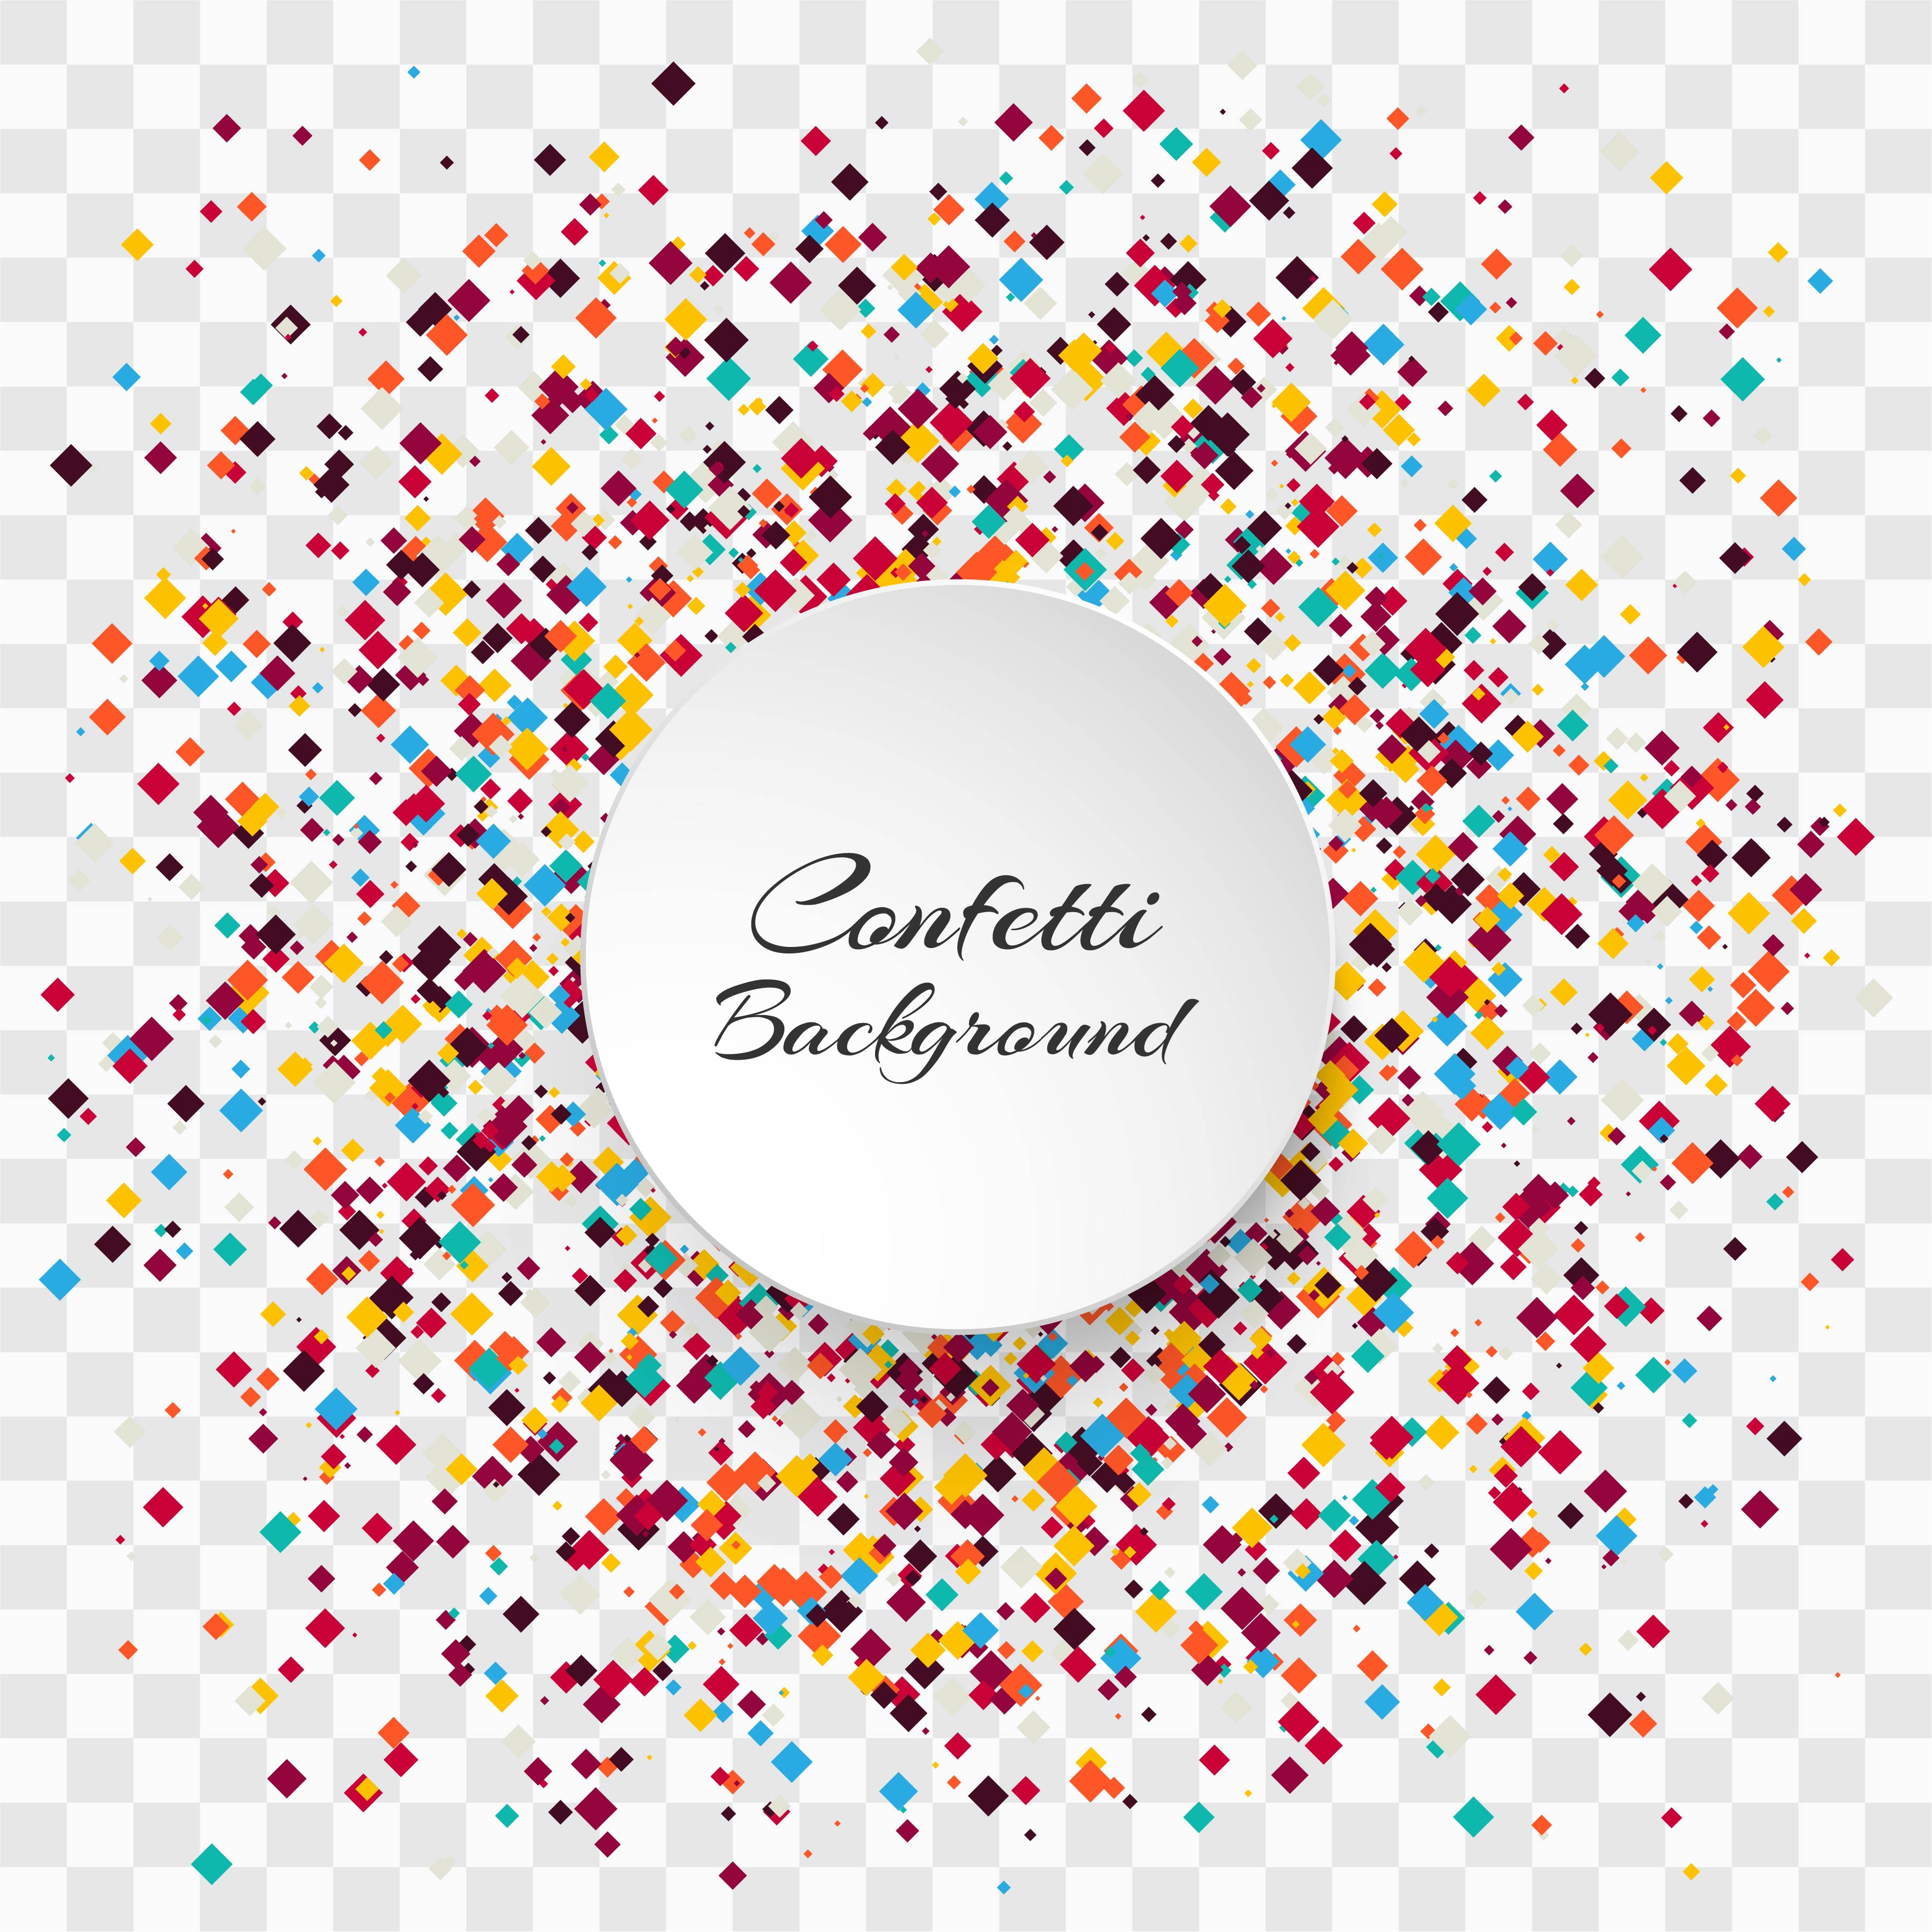 Celebration Colorful Confetti Transparent Background Vector Download Free Vectors Clipart Graphics Vector Art All png & cliparts images on nicepng are best quality. celebration colorful confetti